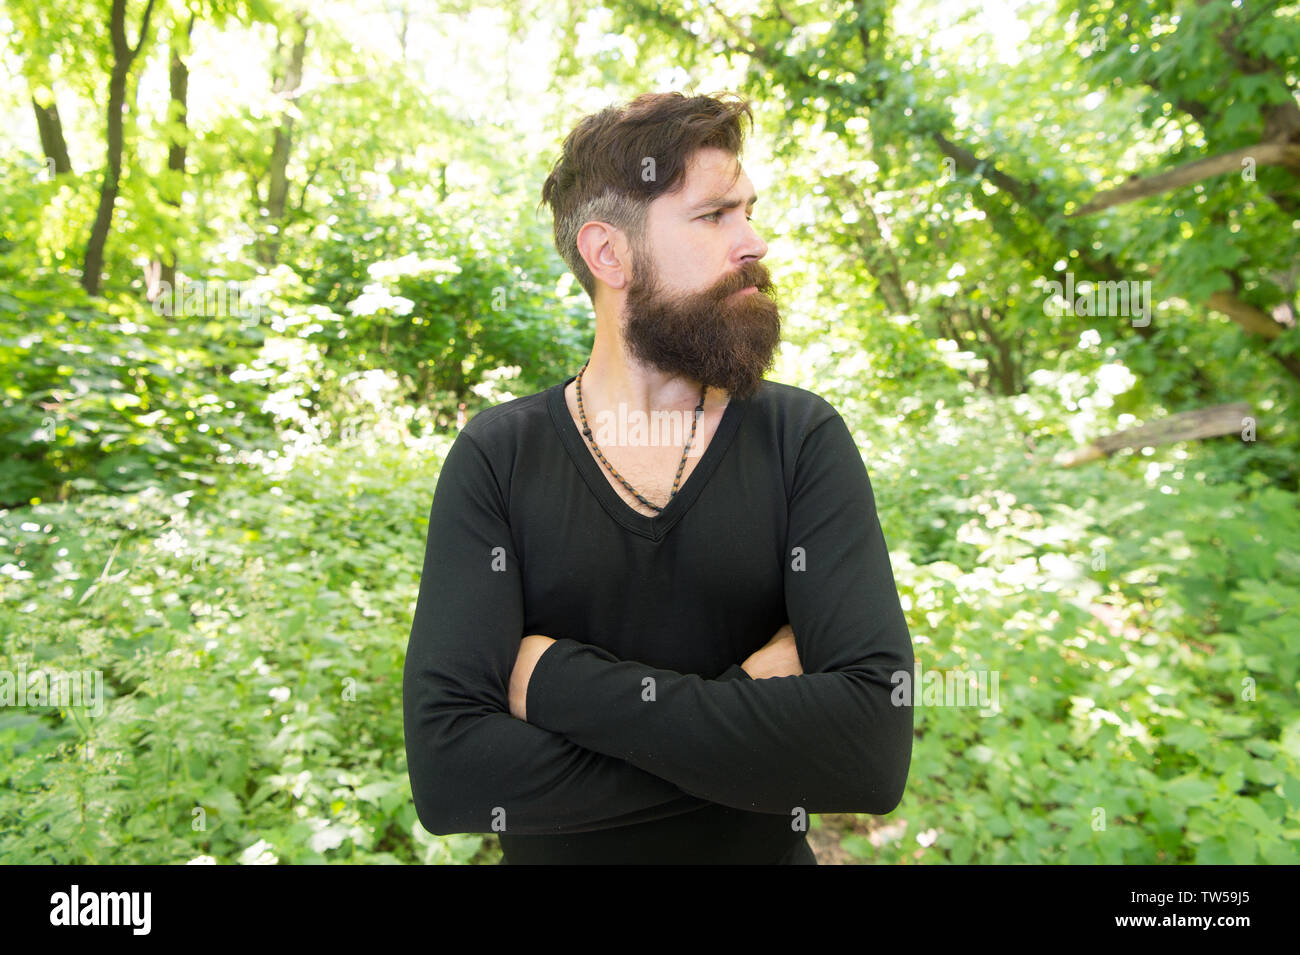 Wild nature. Man bearded hipster bright foliage background. Guy relax in forest. Exploring nature. Handsome man with beard and mustache in nature. Brutality of jungles concept. Summer heat season. - Stock Image